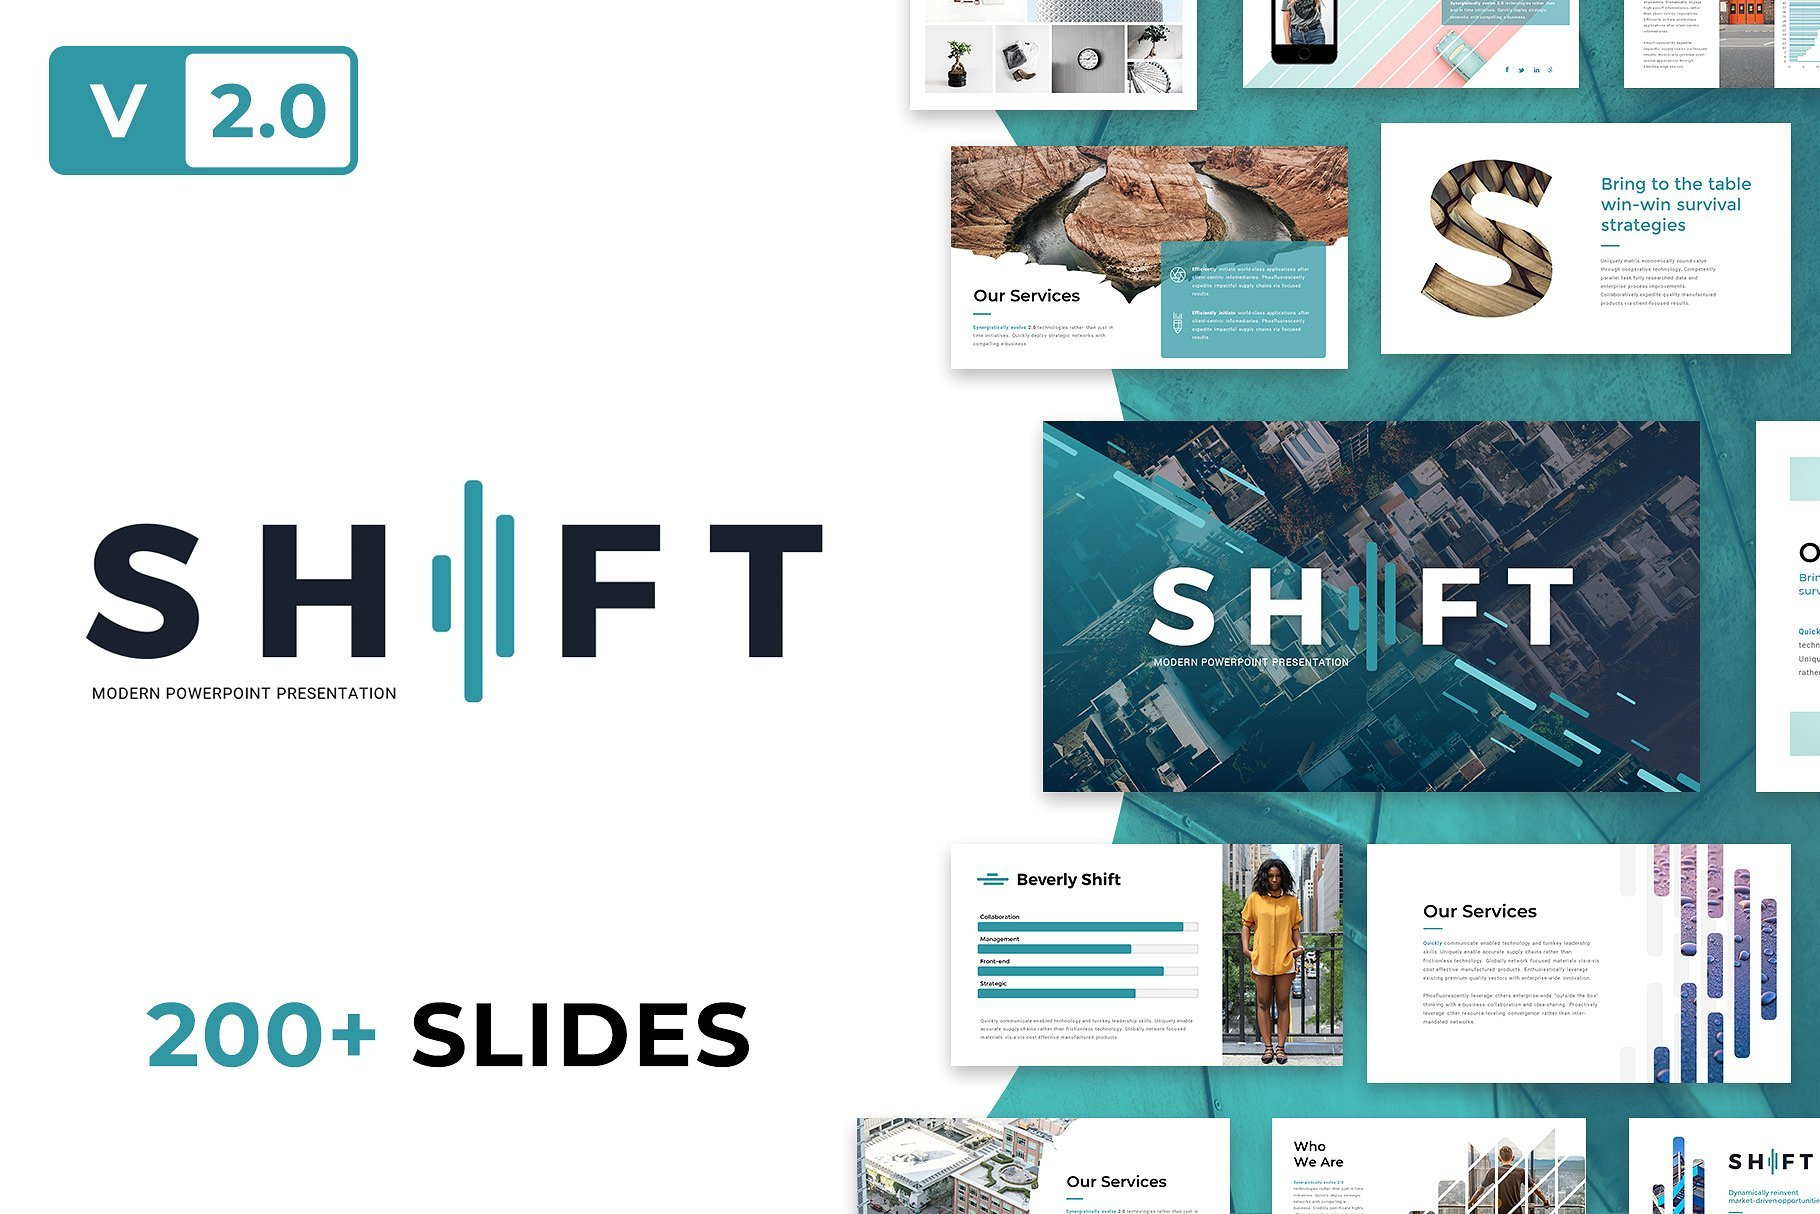 50 Creative PowerPoint Templates in 2020: Free And Premium. Best Creative Presentation Ideas - cm cover shift v2